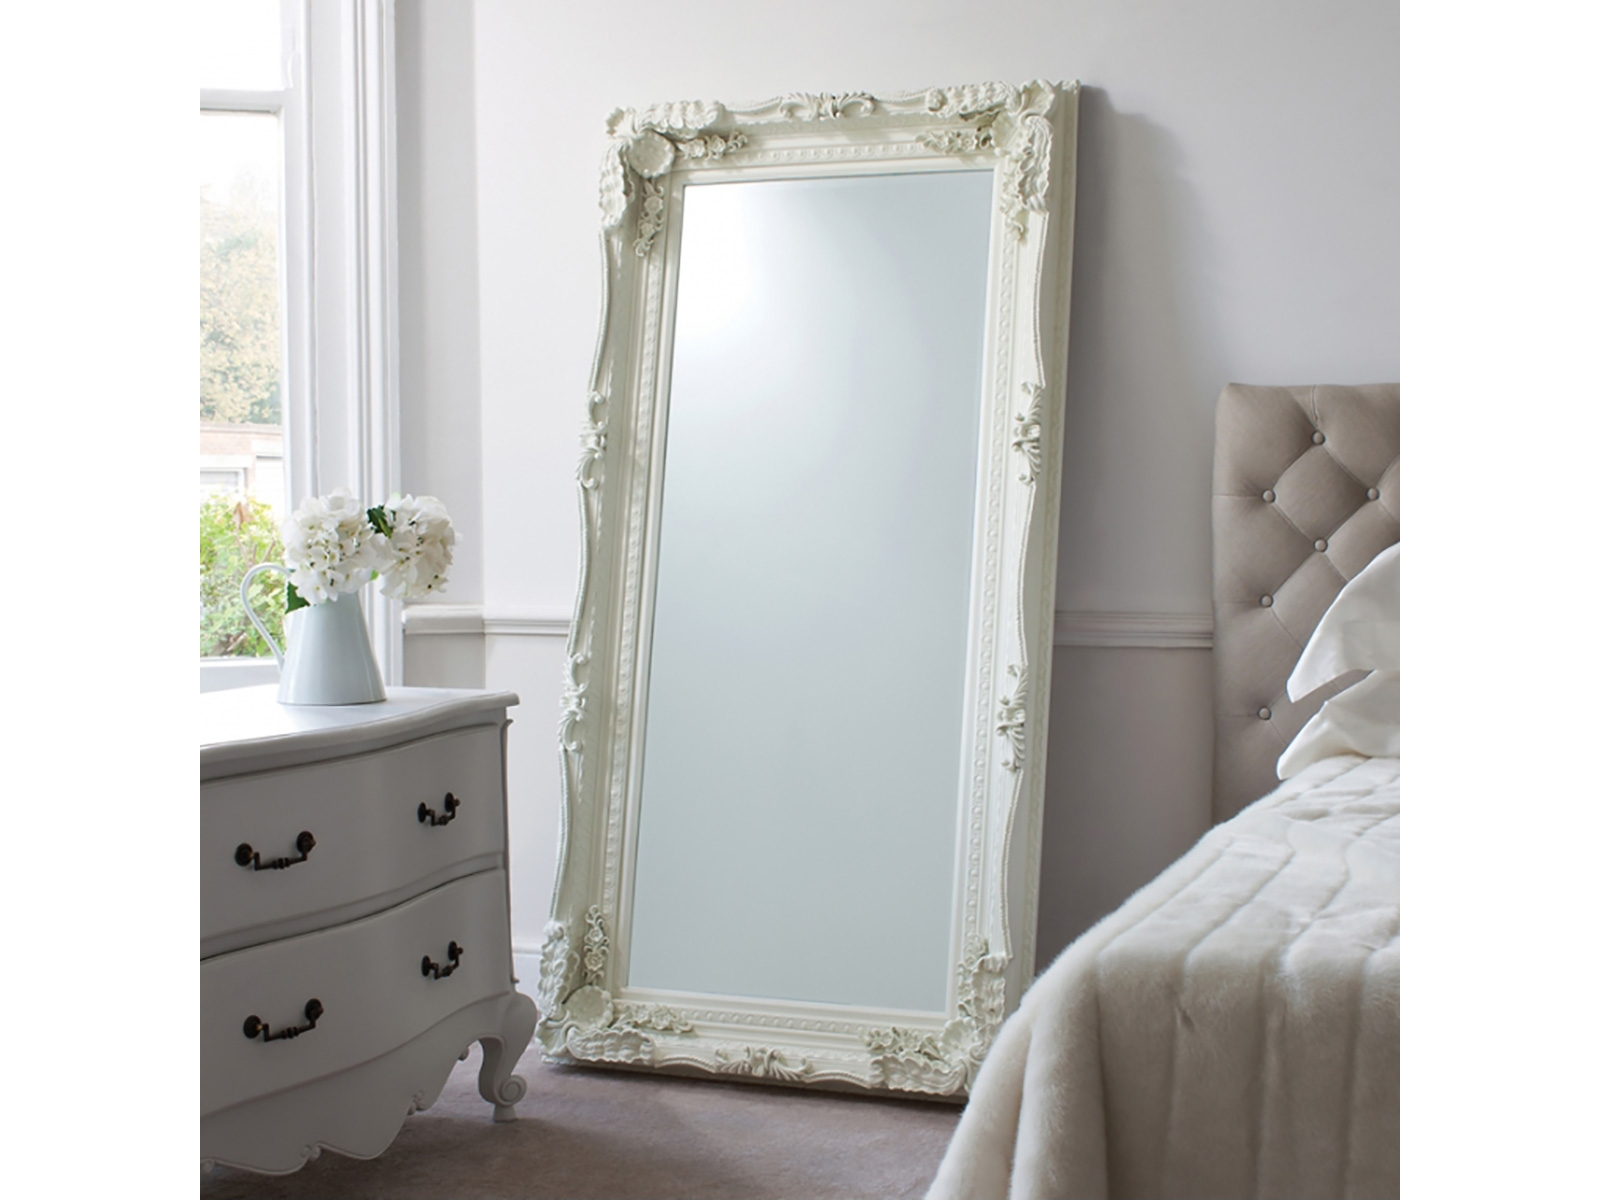 Mirrors Carved Louis Leaner Mirror Cream 69×35 Mirrors Cousins Regarding Large Cream Mirror (Image 14 of 15)